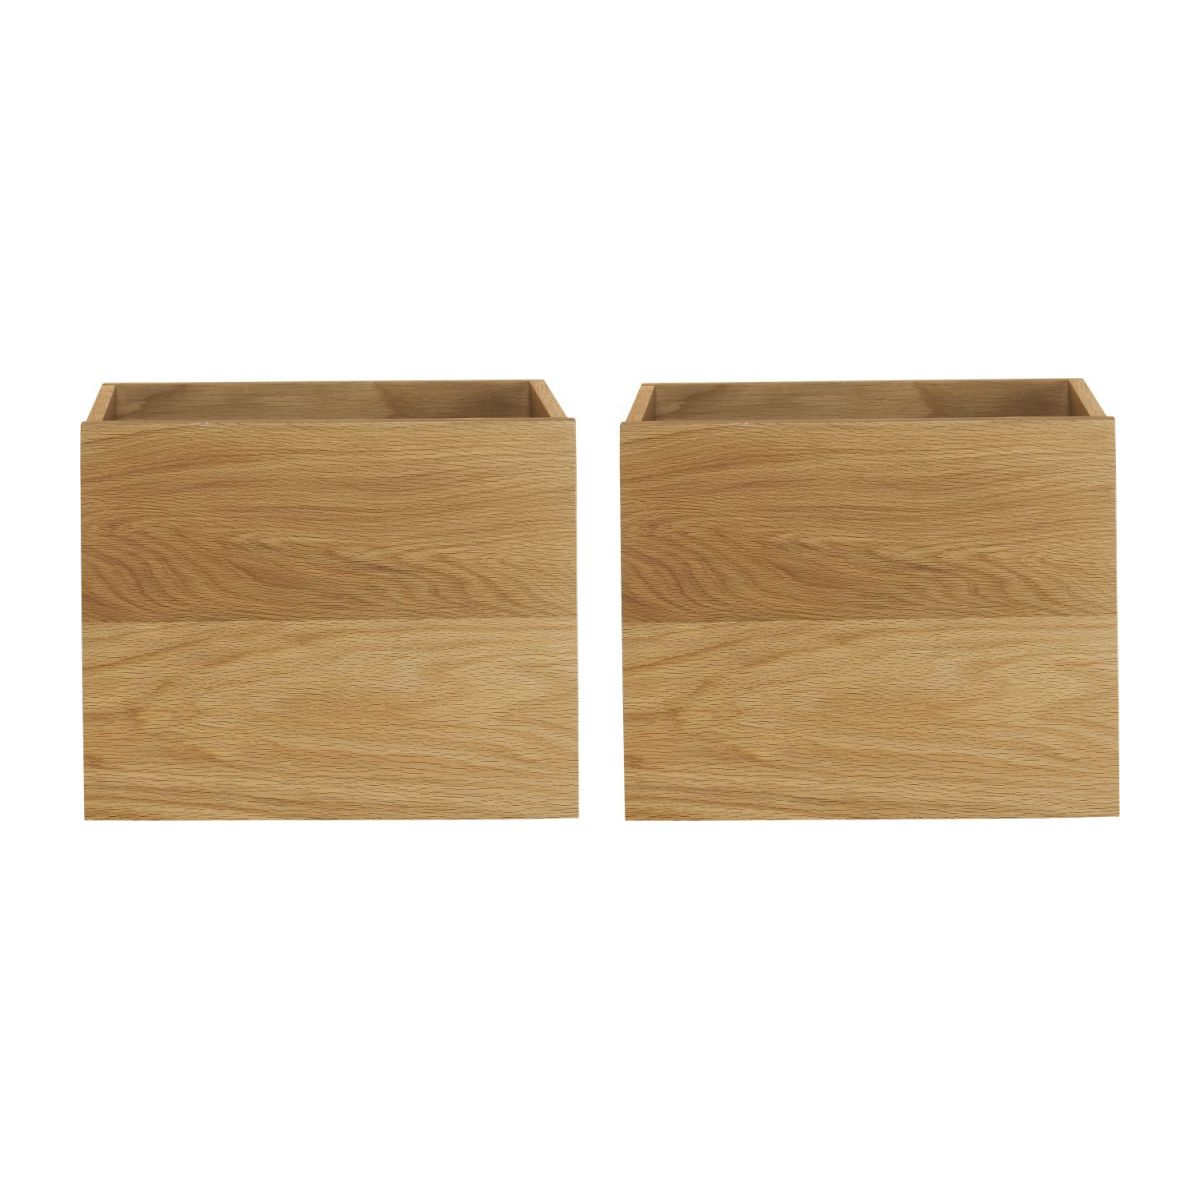 2 oak drawers for mirror n°2